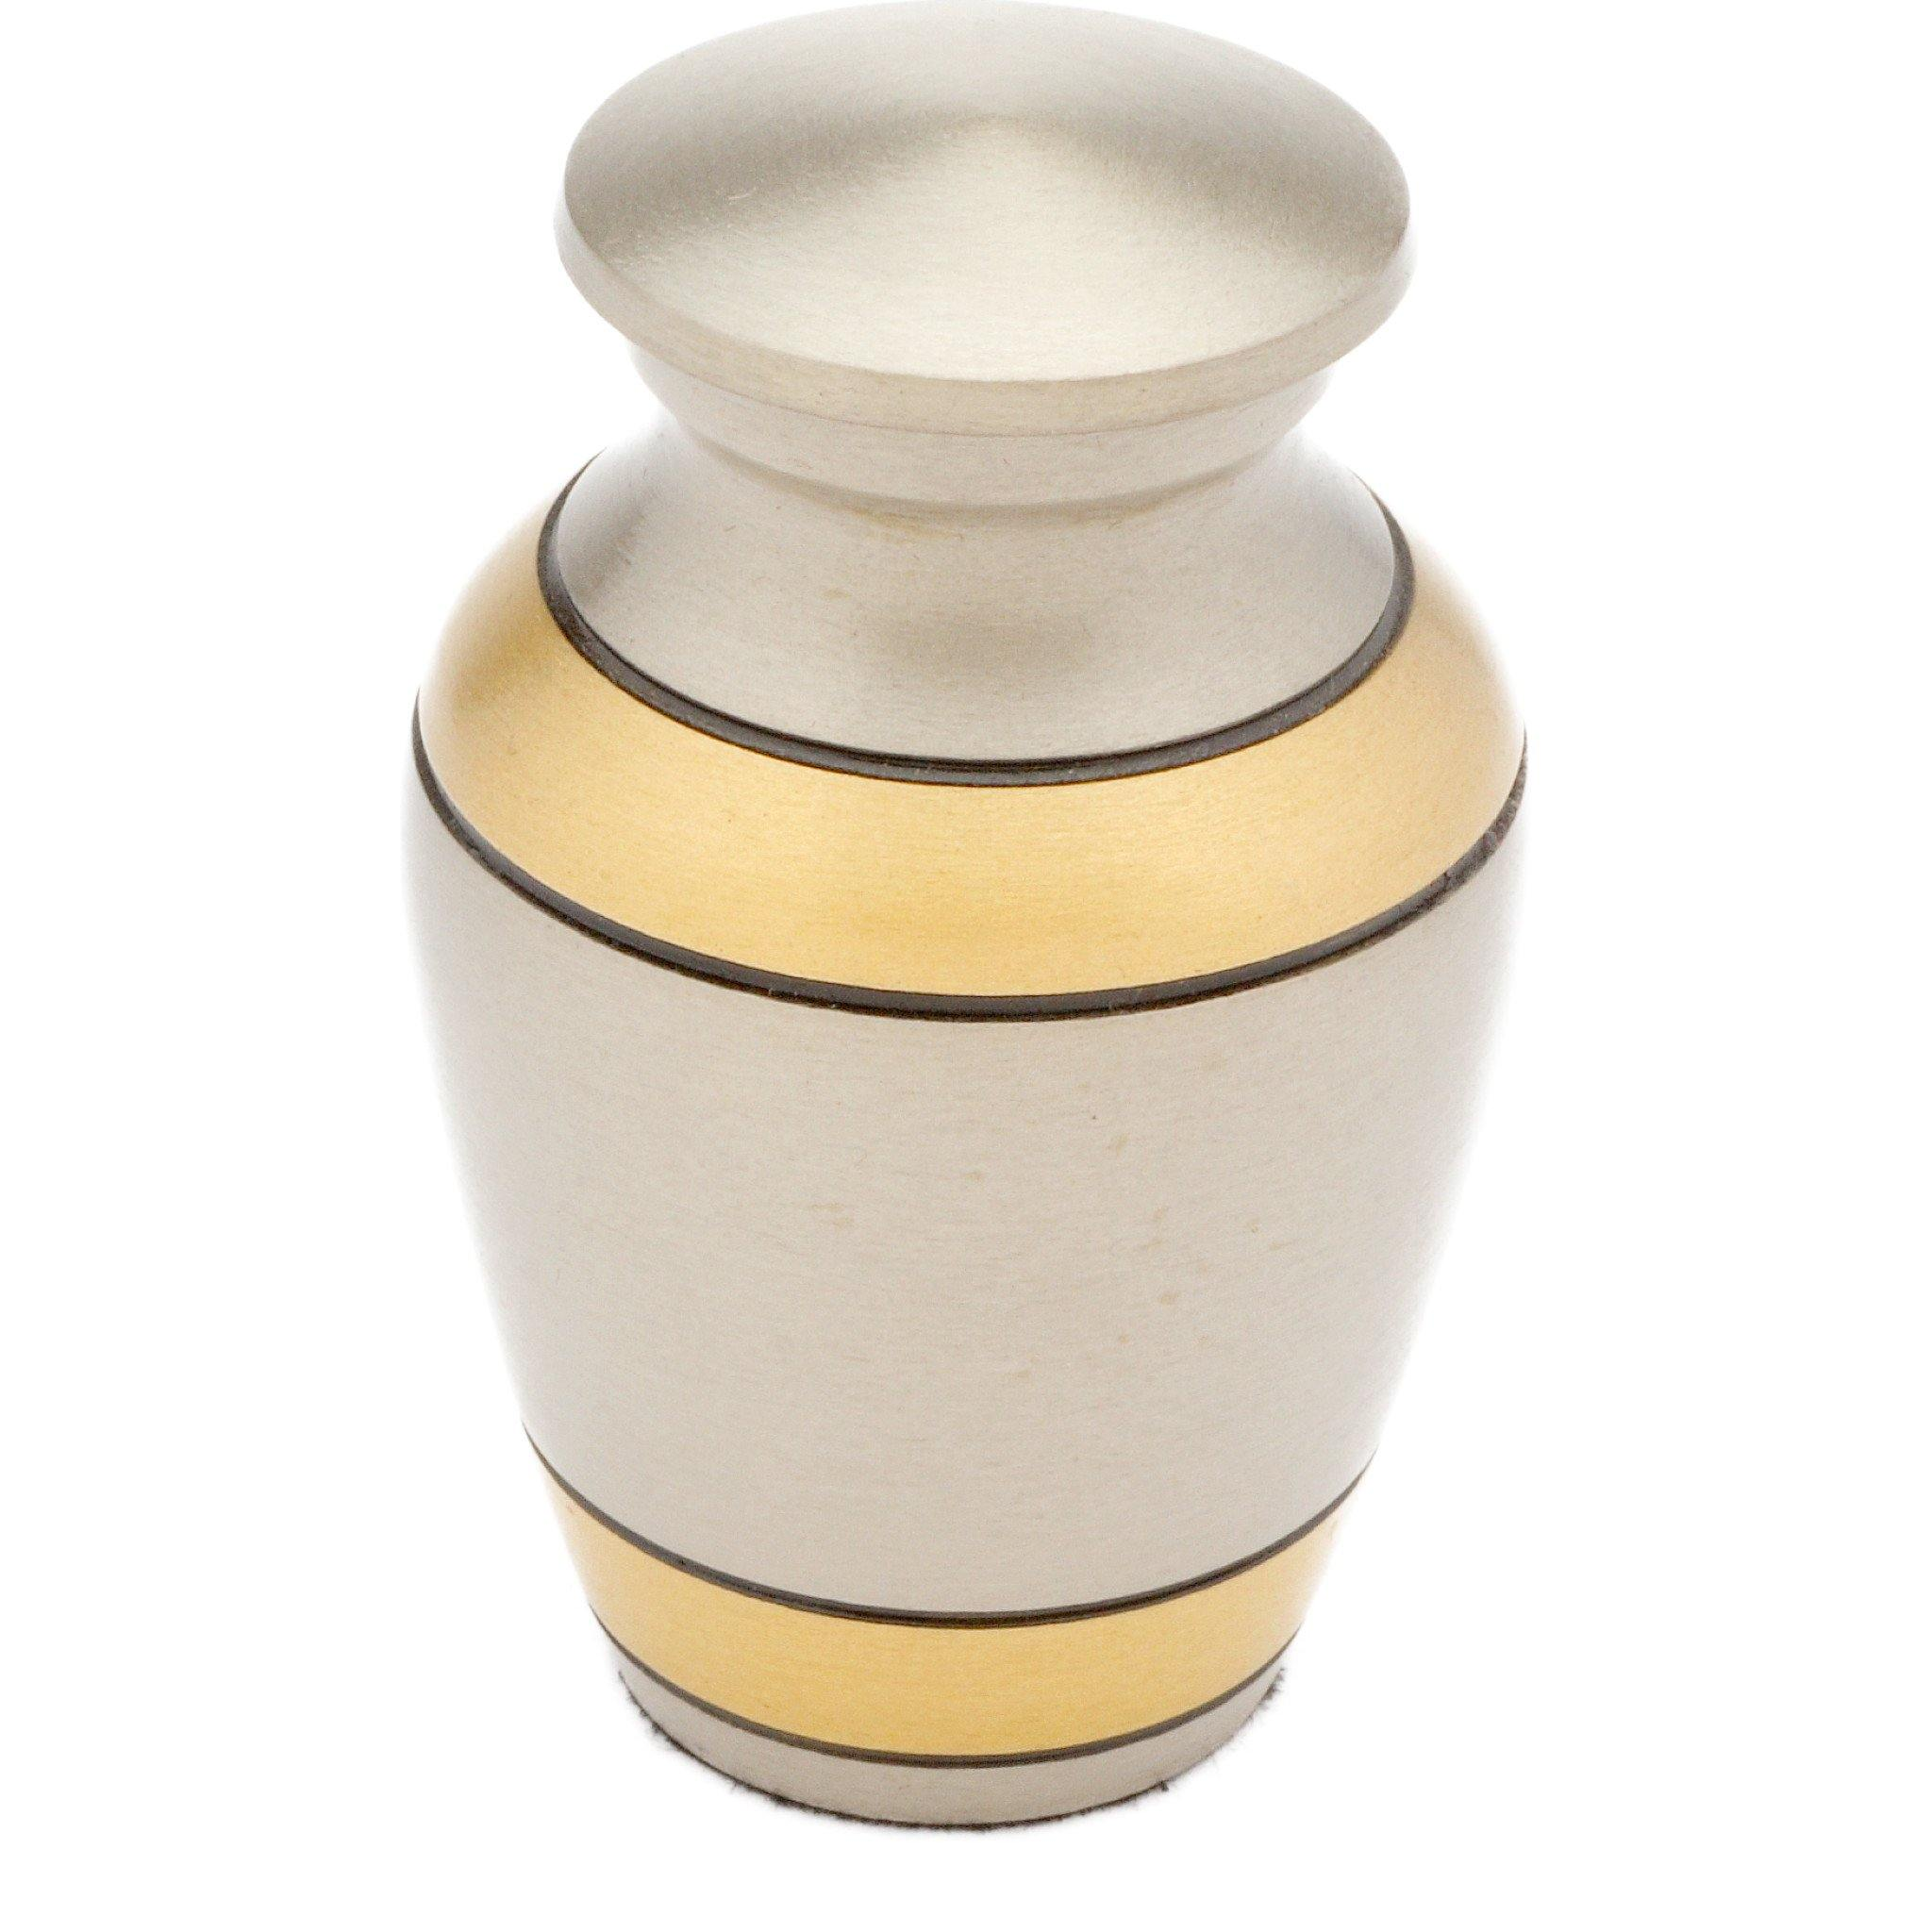 Durham Cremation Ashes Keepsake Mini Urn - Urns UK